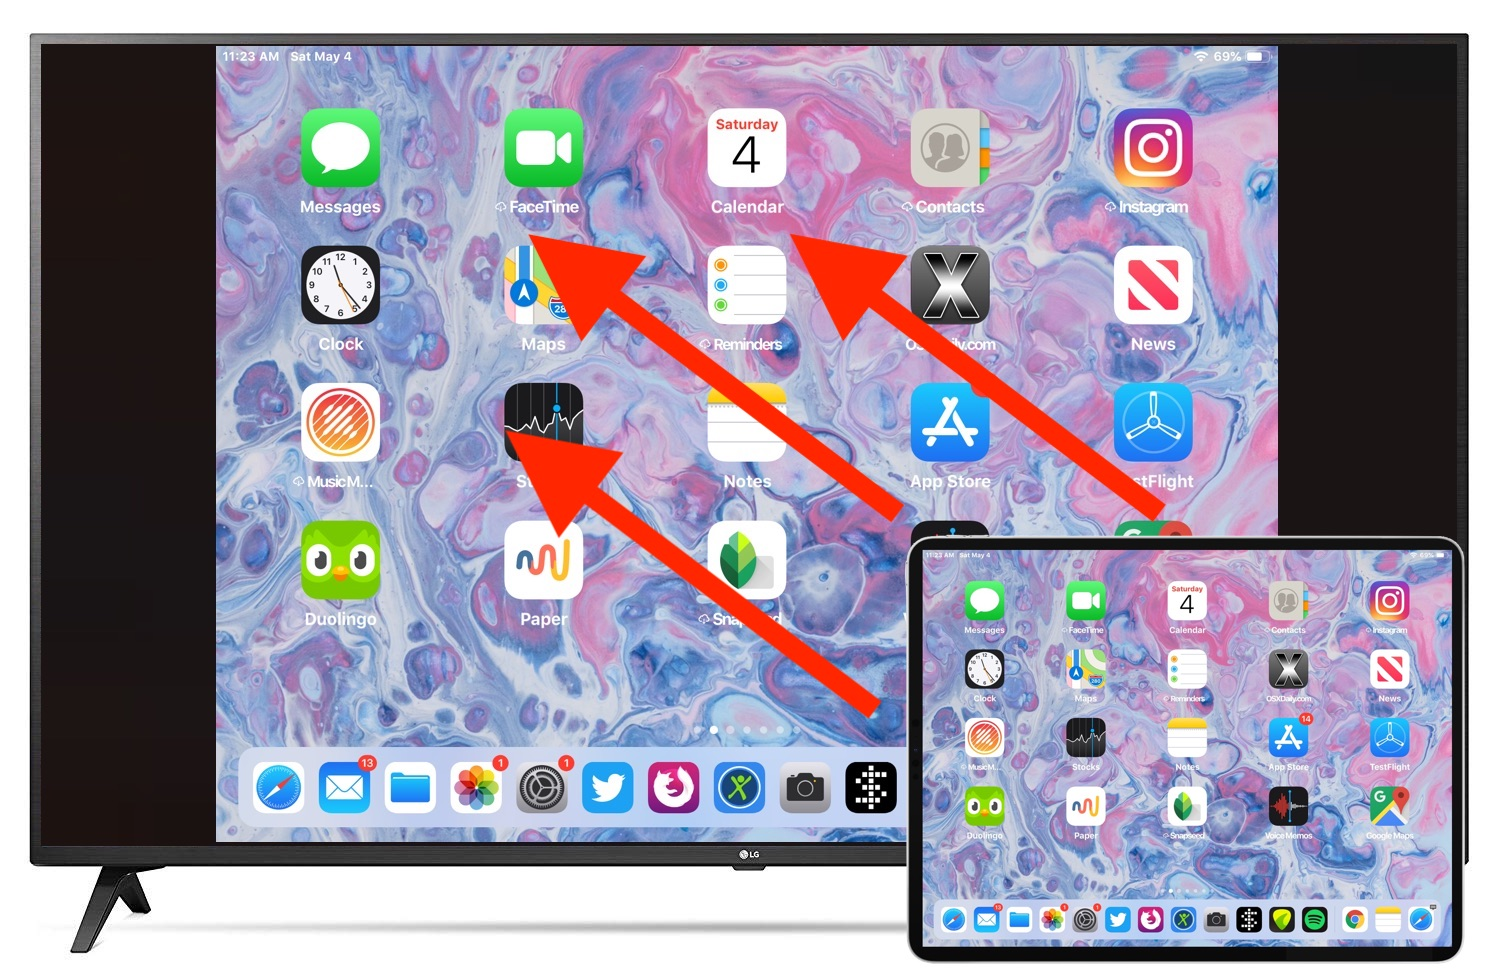 Or Ipad Screen To Apple Tv With Airplay, How To Mirror Iphone Older Tv